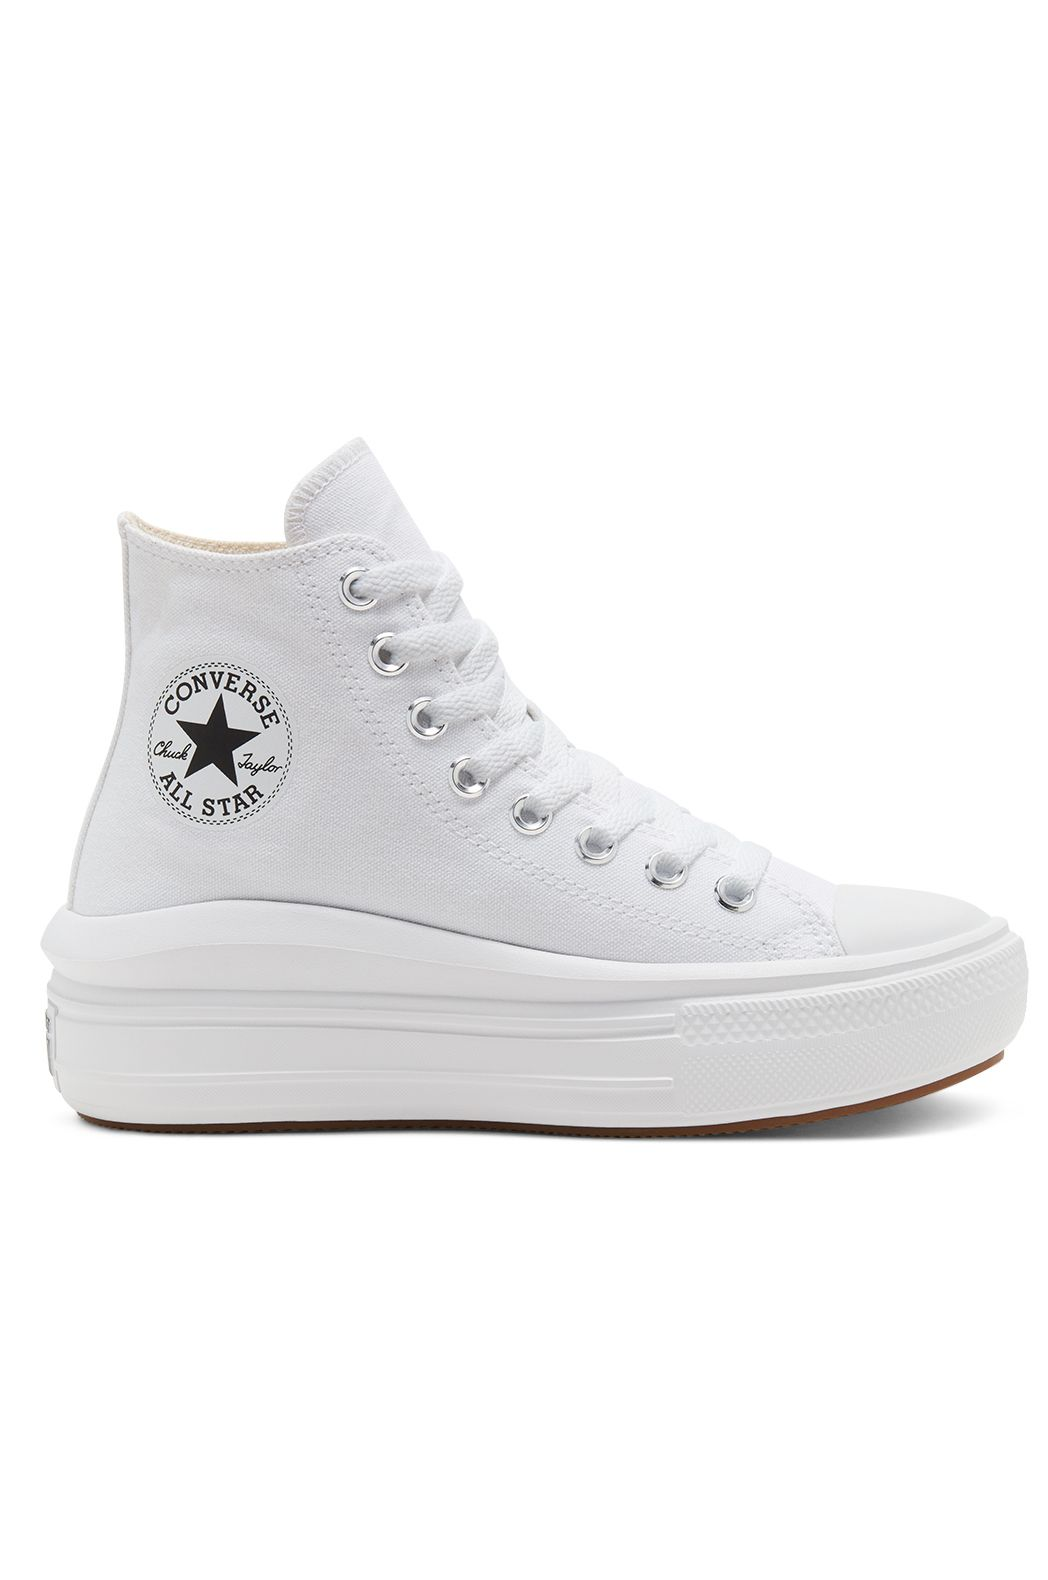 Converse Shoes CHUCK TAYLOR ALL STAR MOVE HI White/Natural Ivory/Black